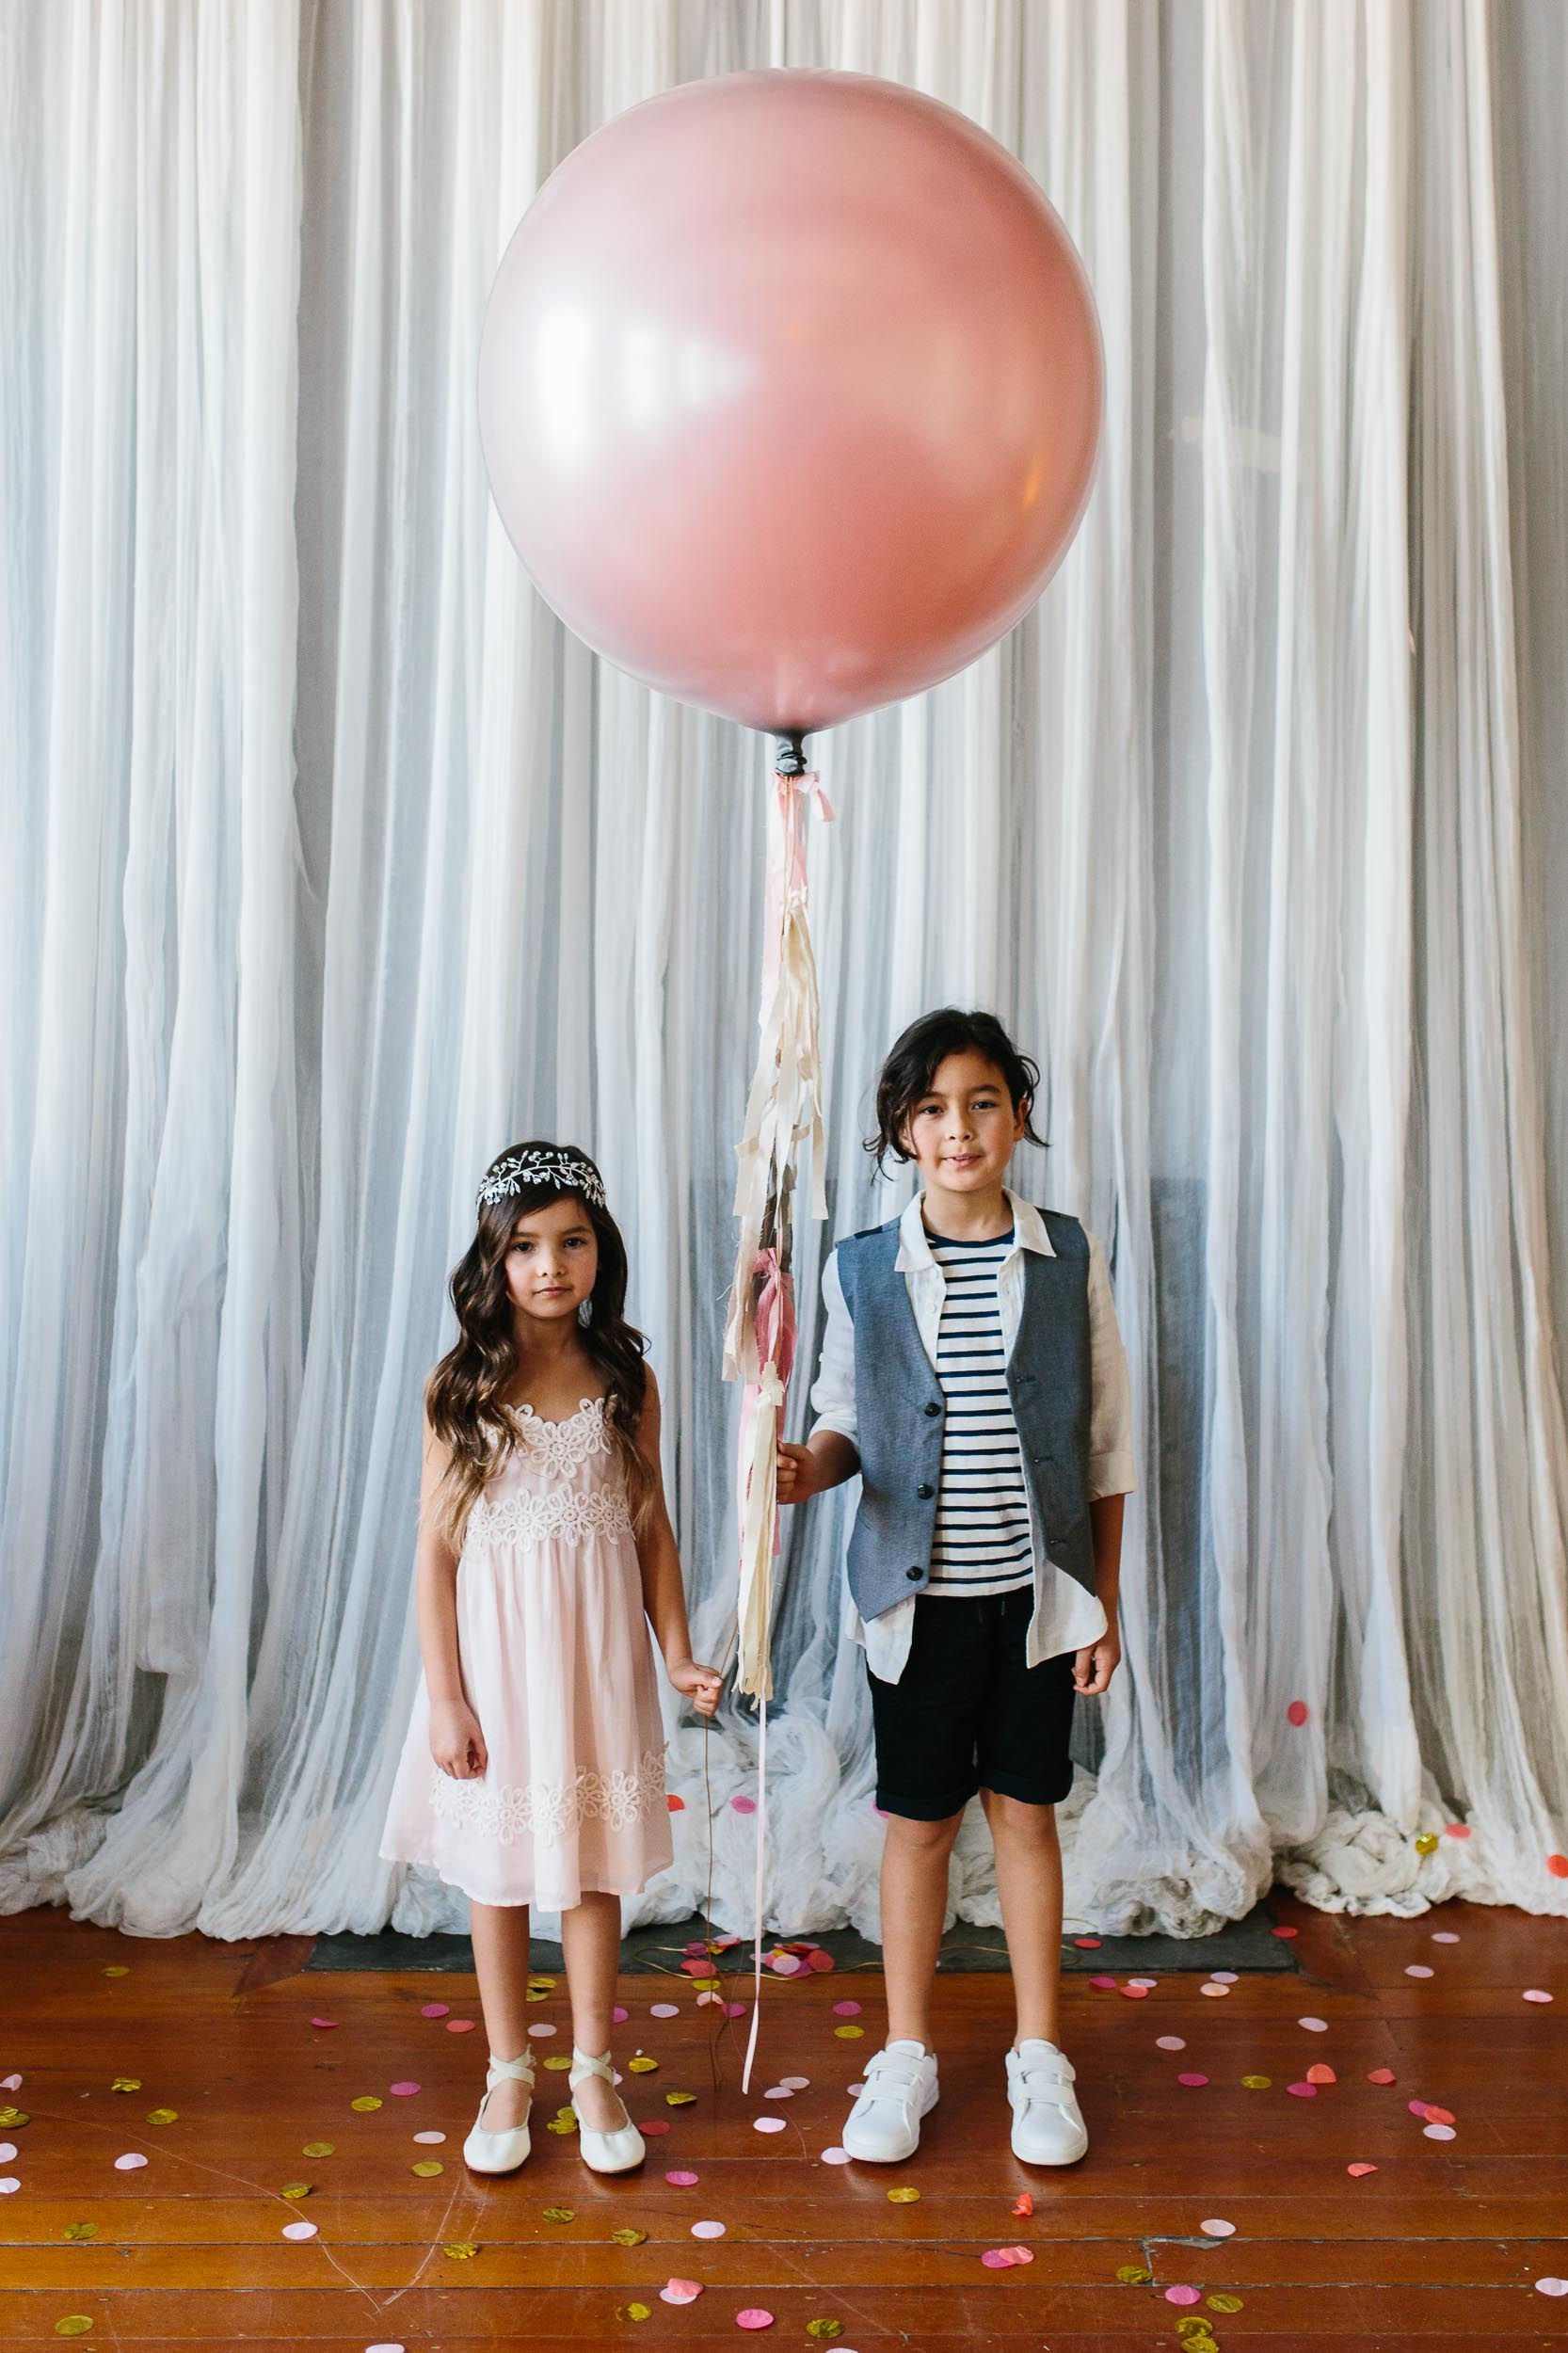 Kas-Richards-Party-with-Lenzo-Witchery-Kids-George-Ballroom-Event-64.jpg